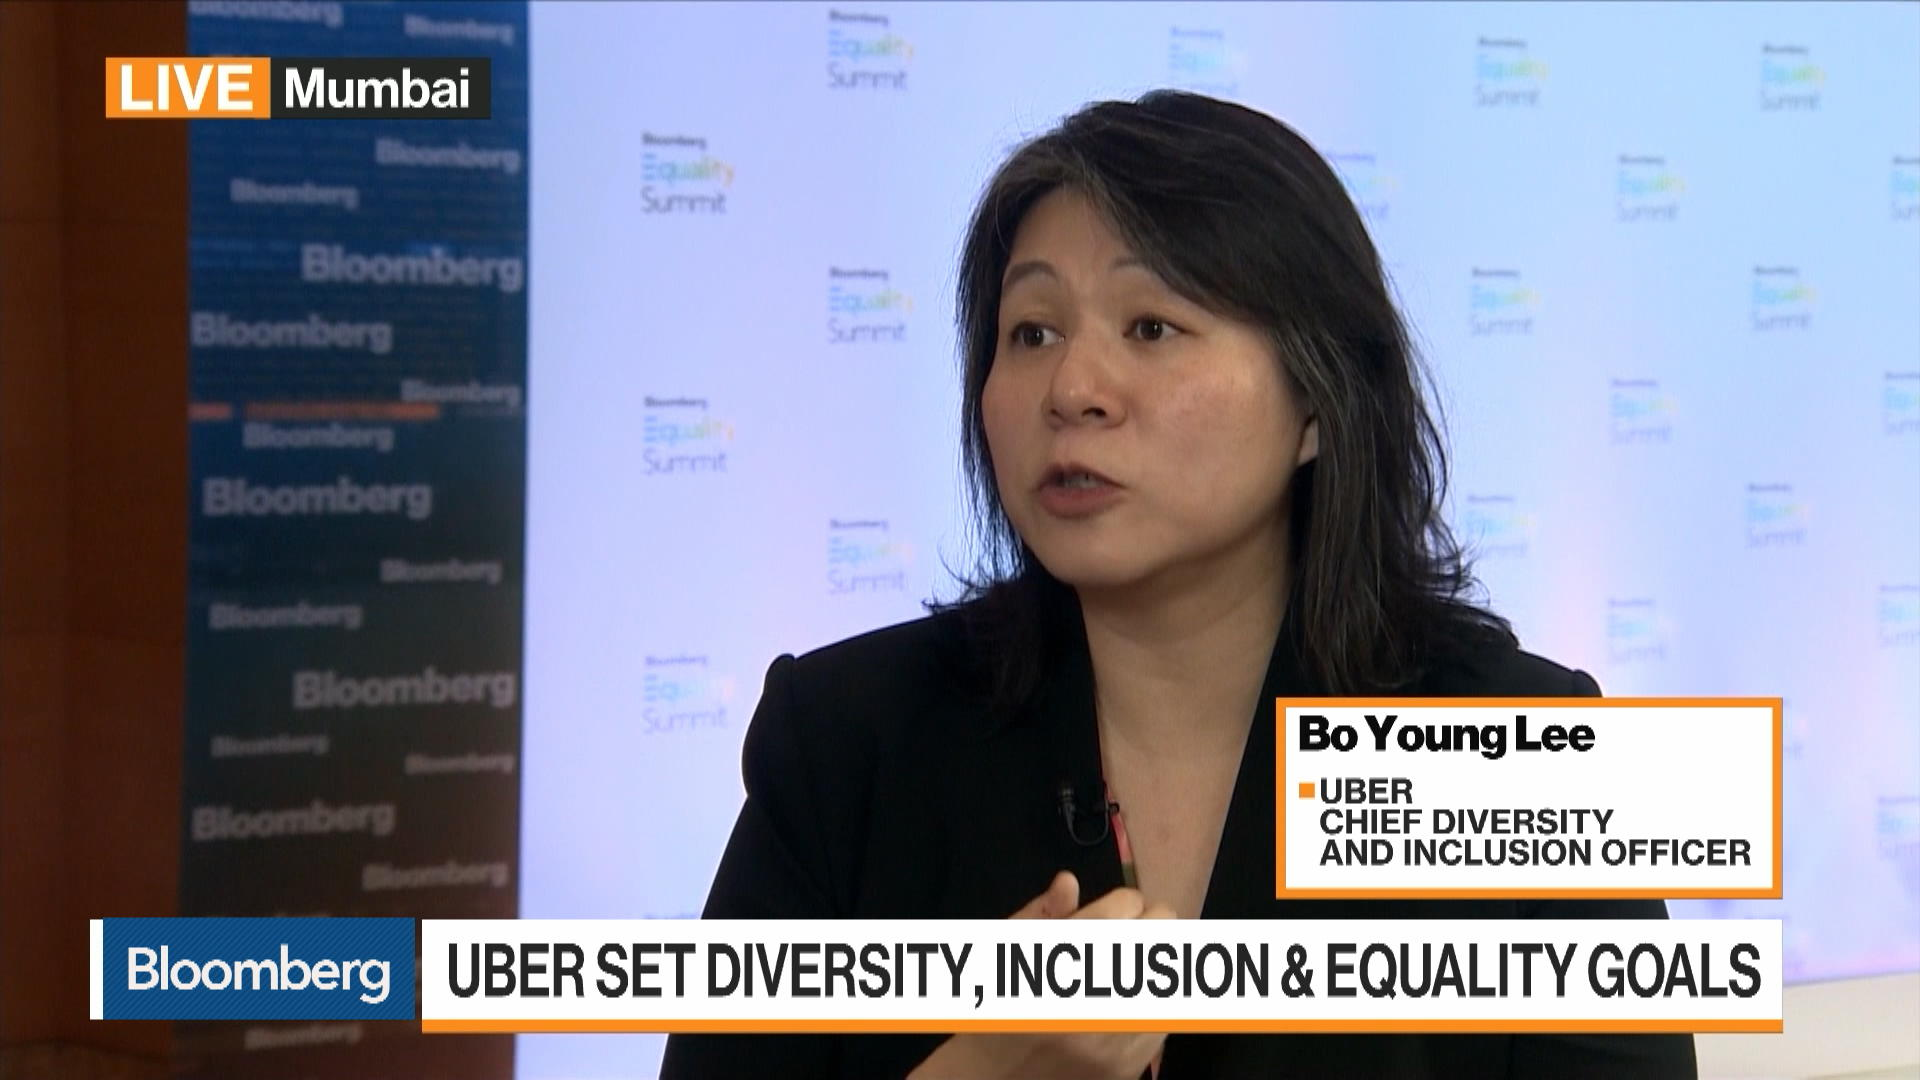 Uber Chief Diversity and Inclusion Officer Bo Young Lee on Diversity in Silicon Valley, Uber's Goals